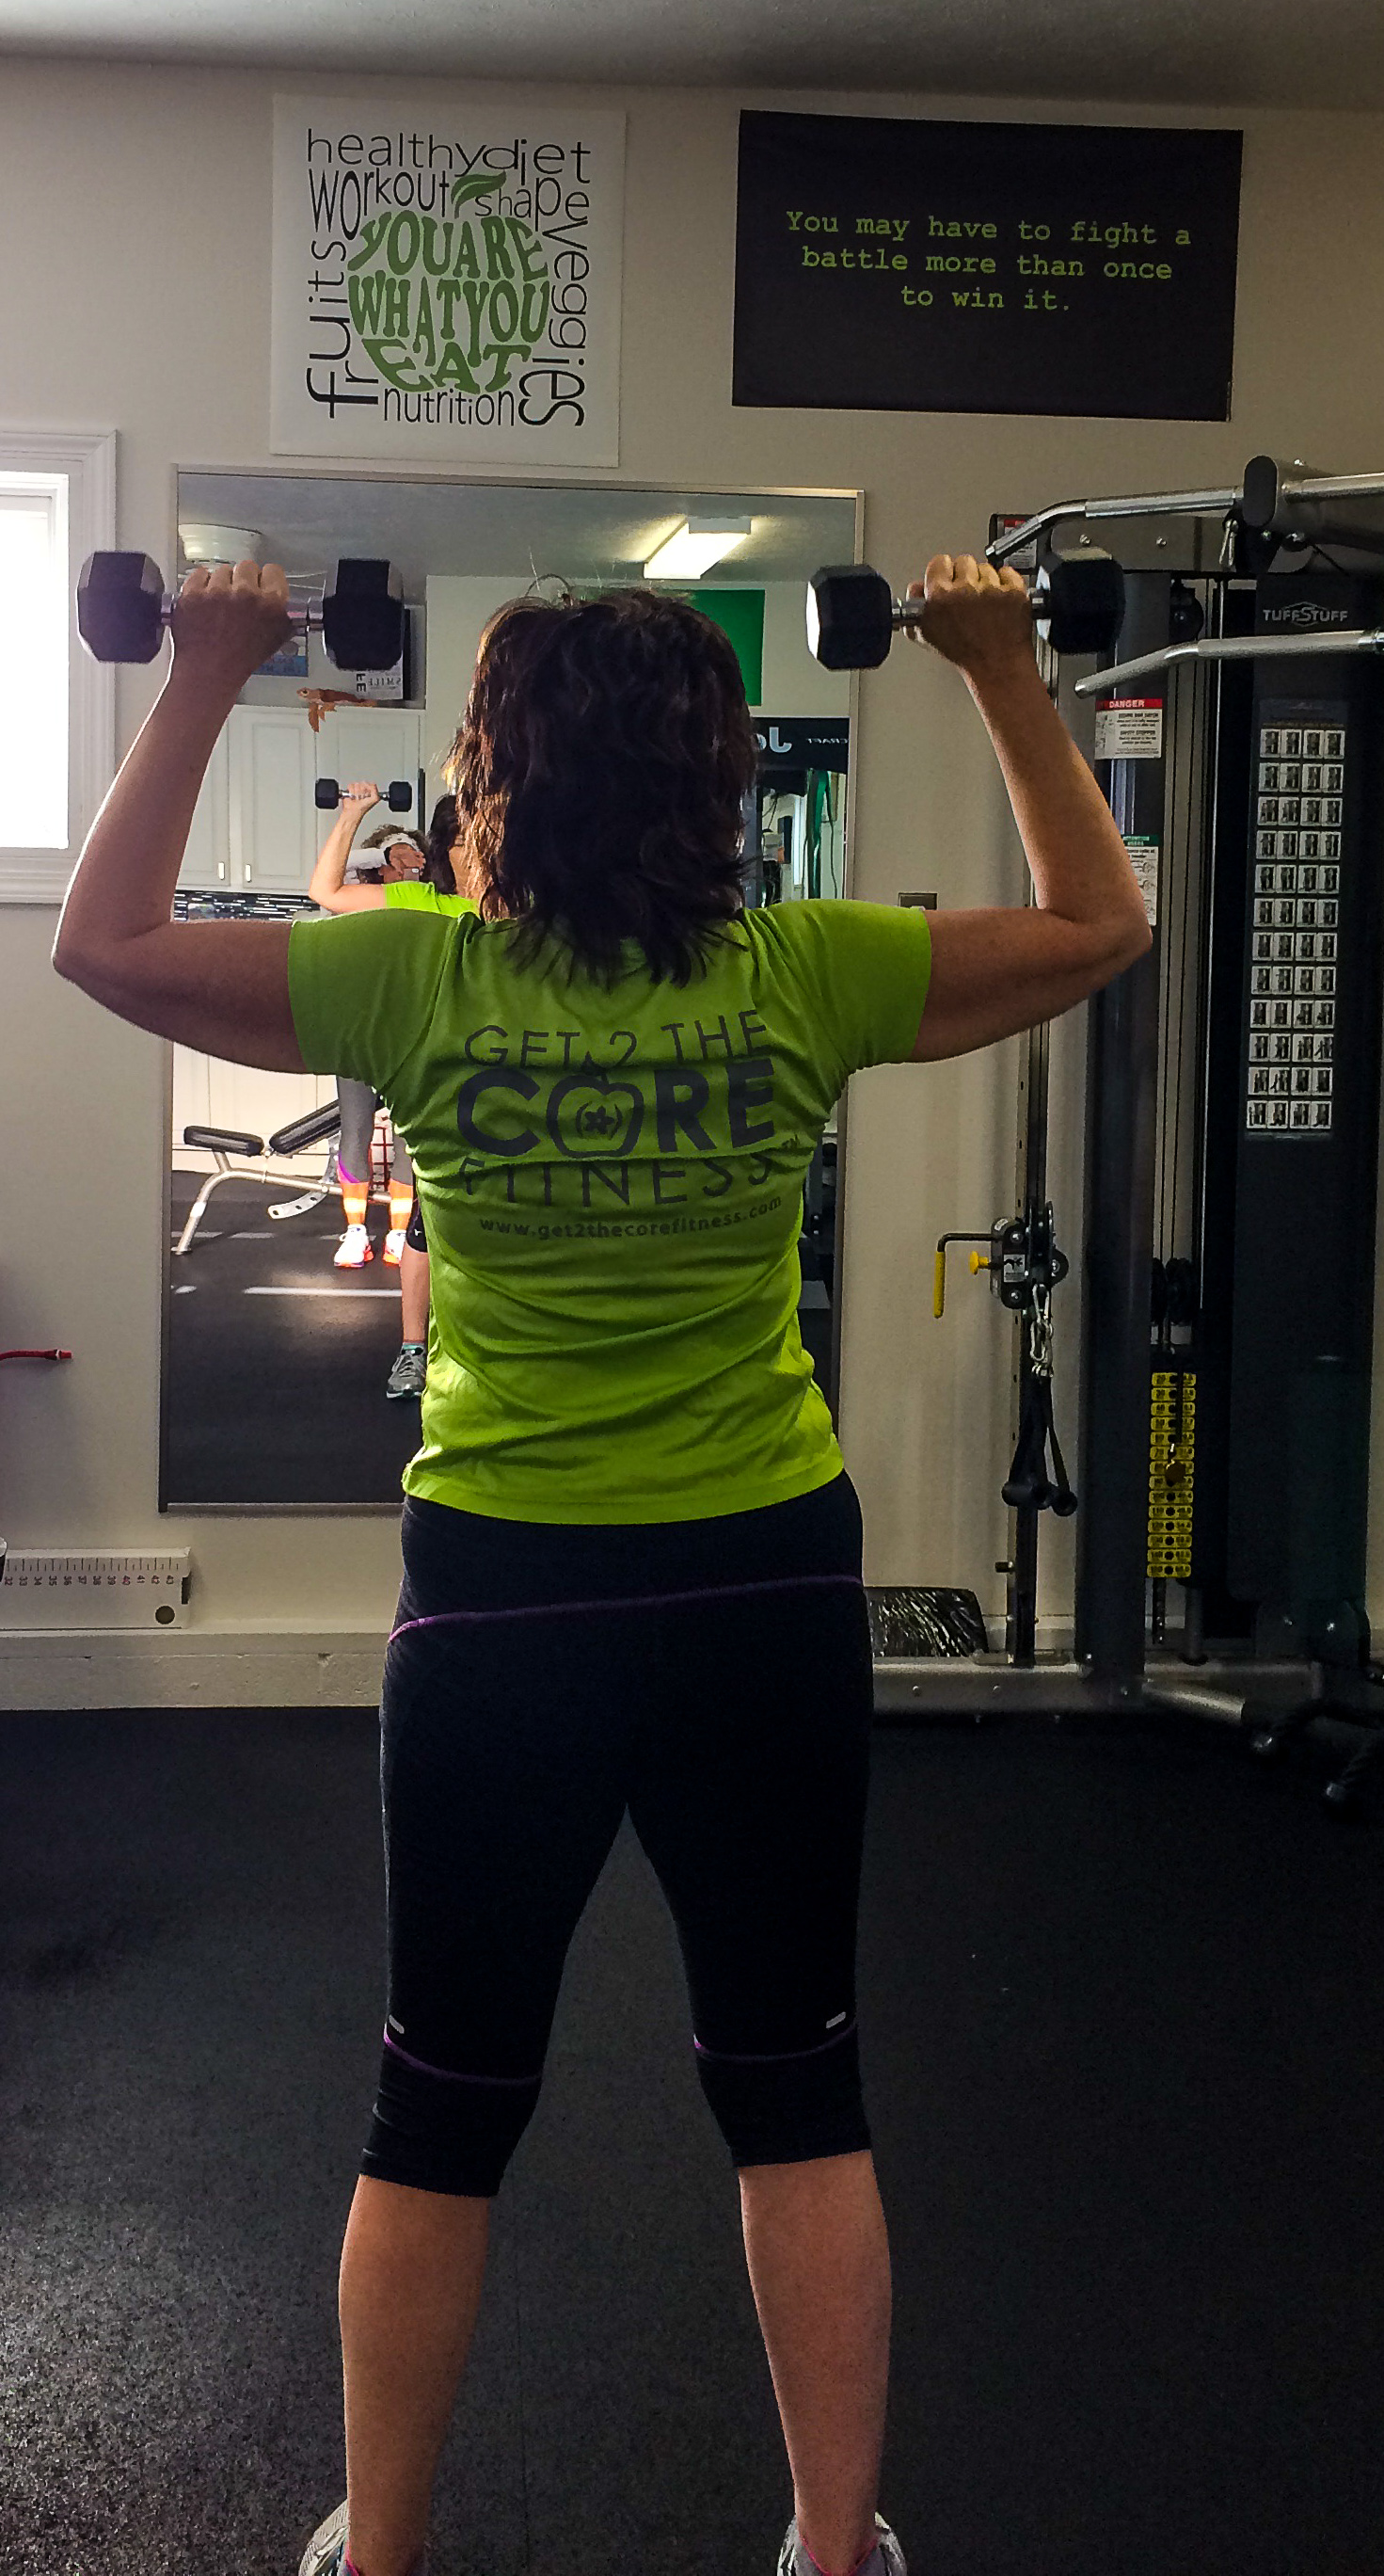 Beth Brinkley began working out at Get 2 the Core Fitness two years ago,  and is proud that she feels more comfortable in her clothes, she makes  better ...